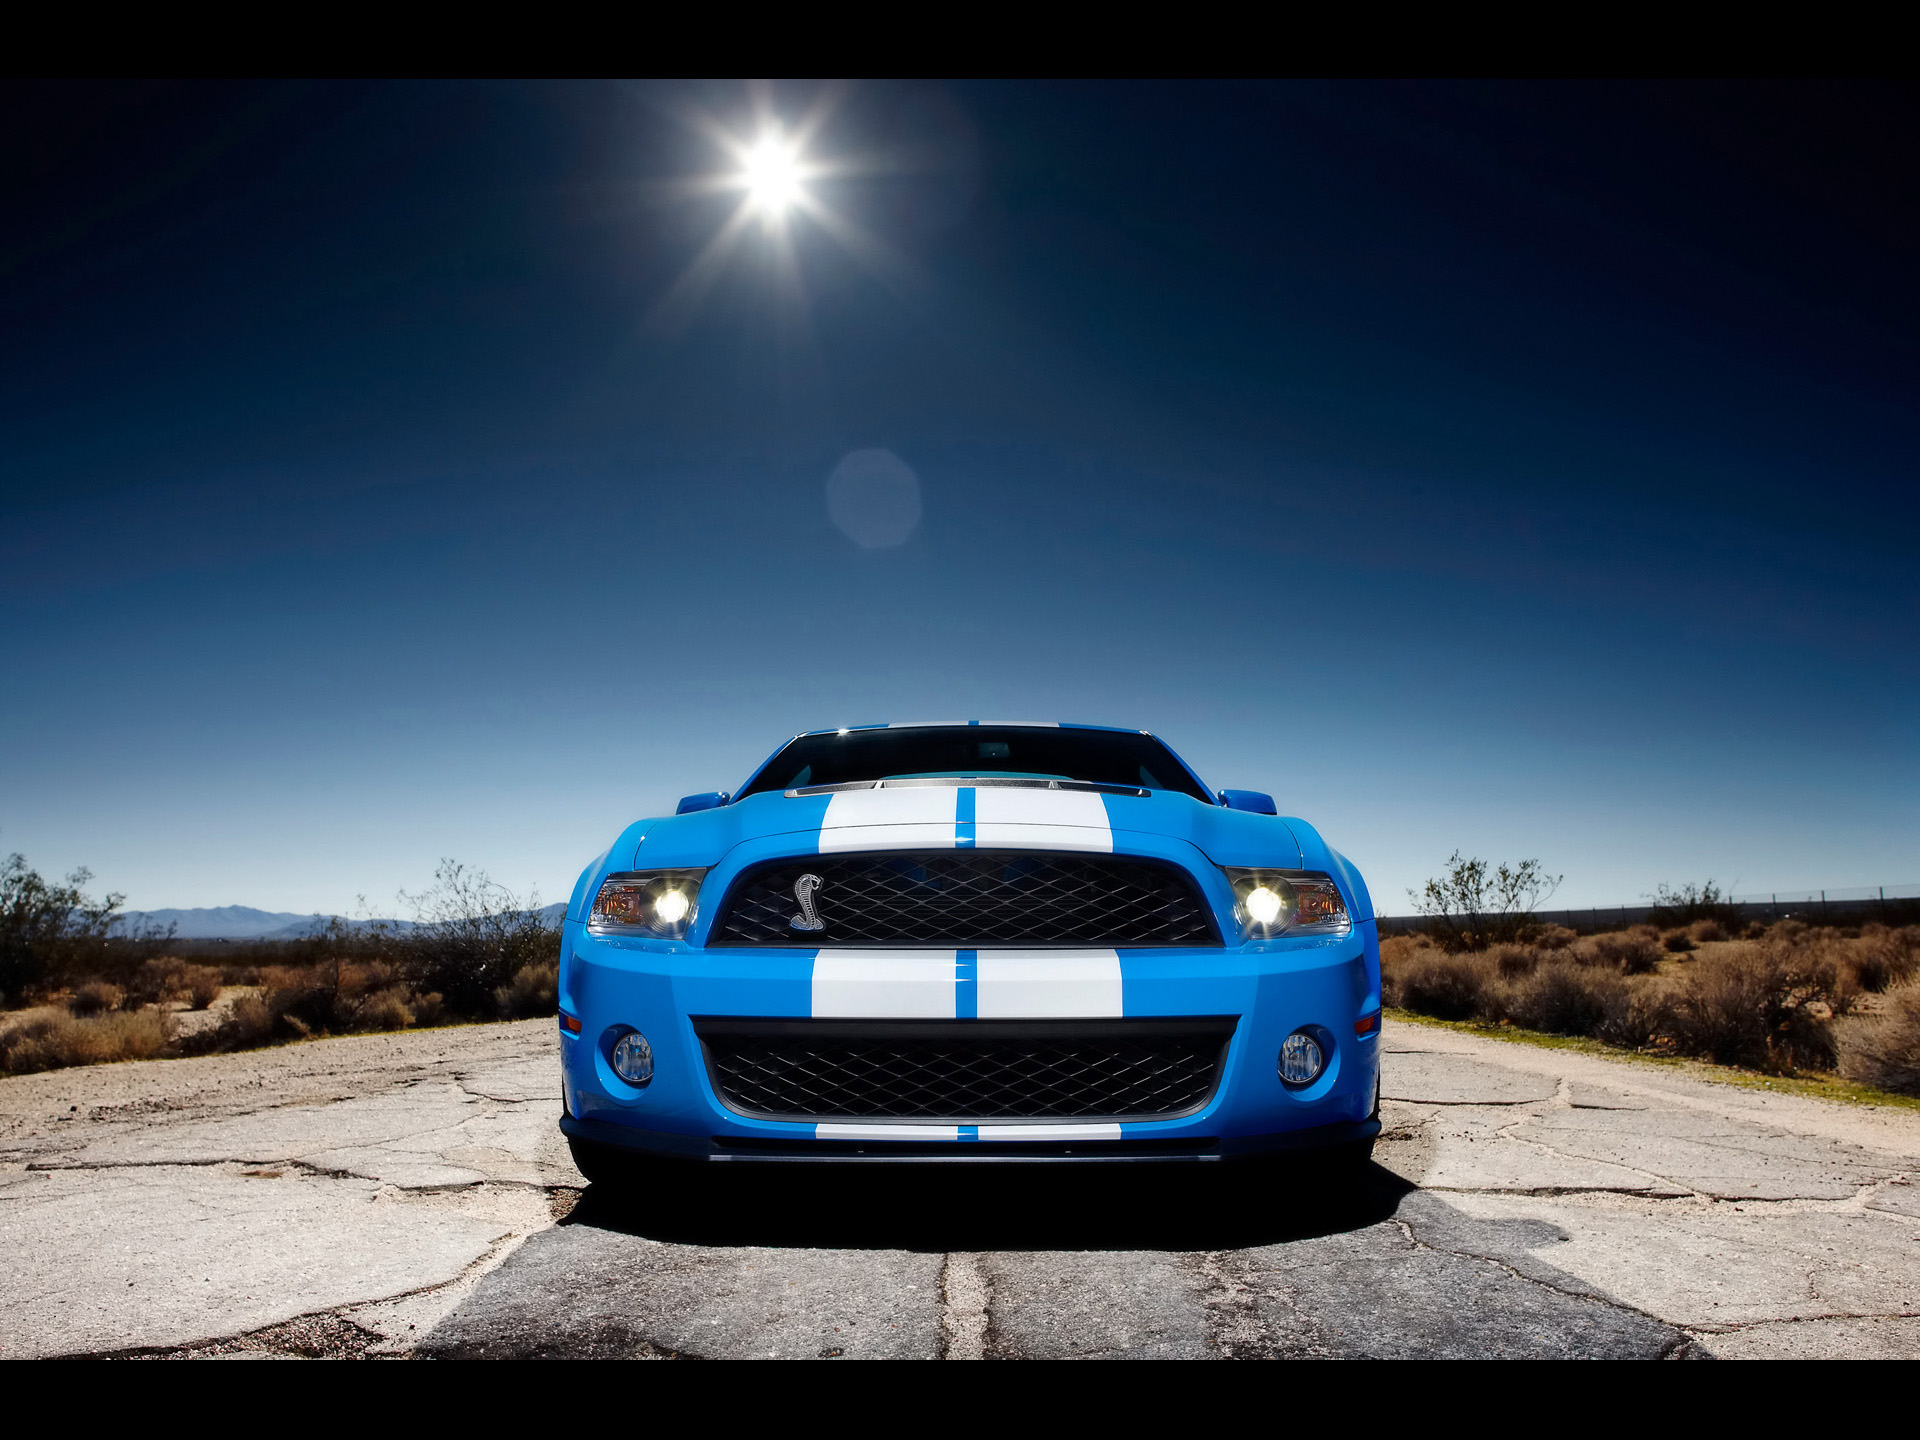 Top Class 3d Wallpapers Drive A Shelby Mustang In Las Vegas Shelby Driving